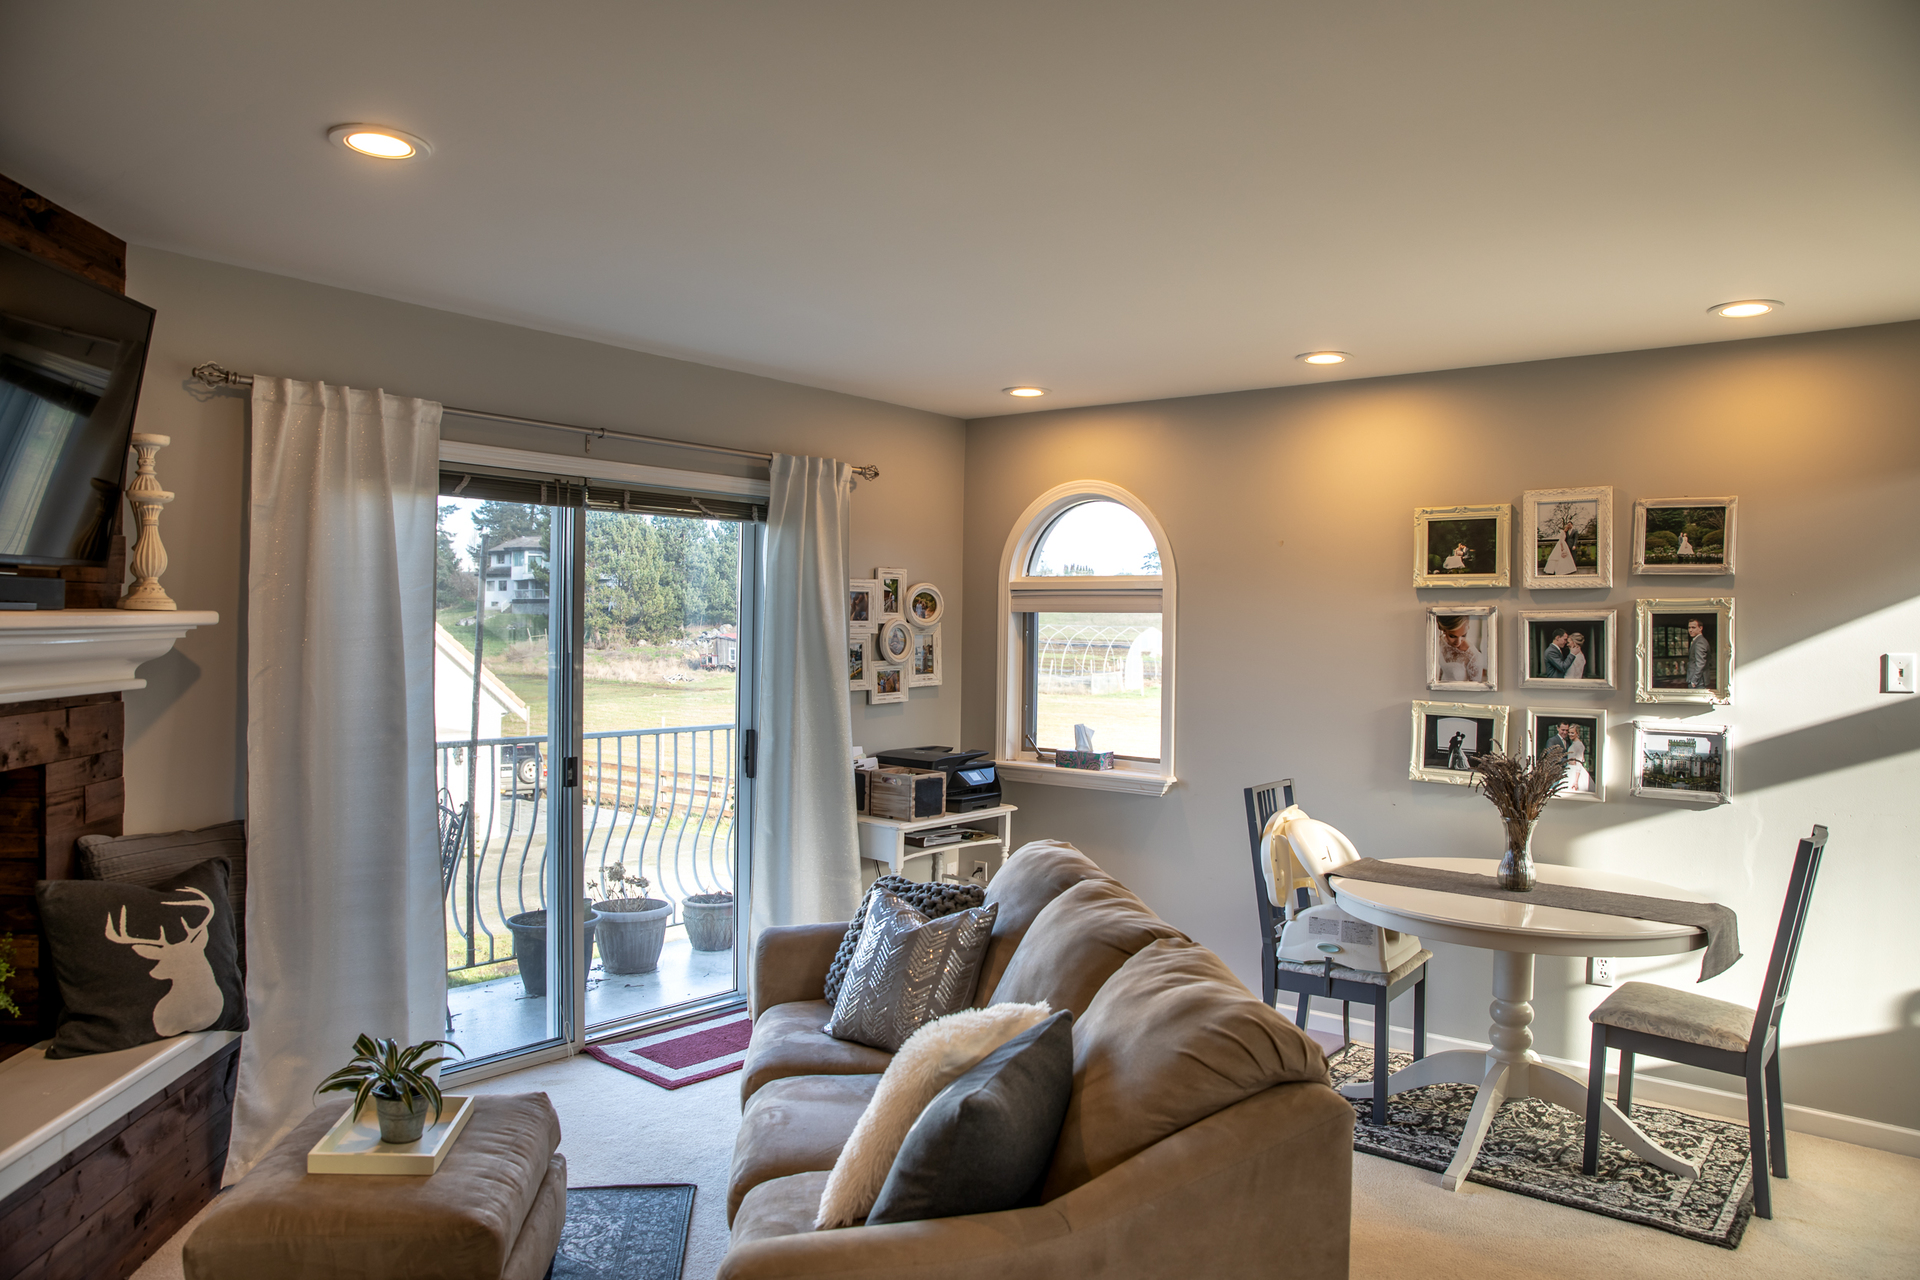 Nanny Suite Living Room at 1950 Highfield Road, Central Saanich, Victoria Bc Bc,